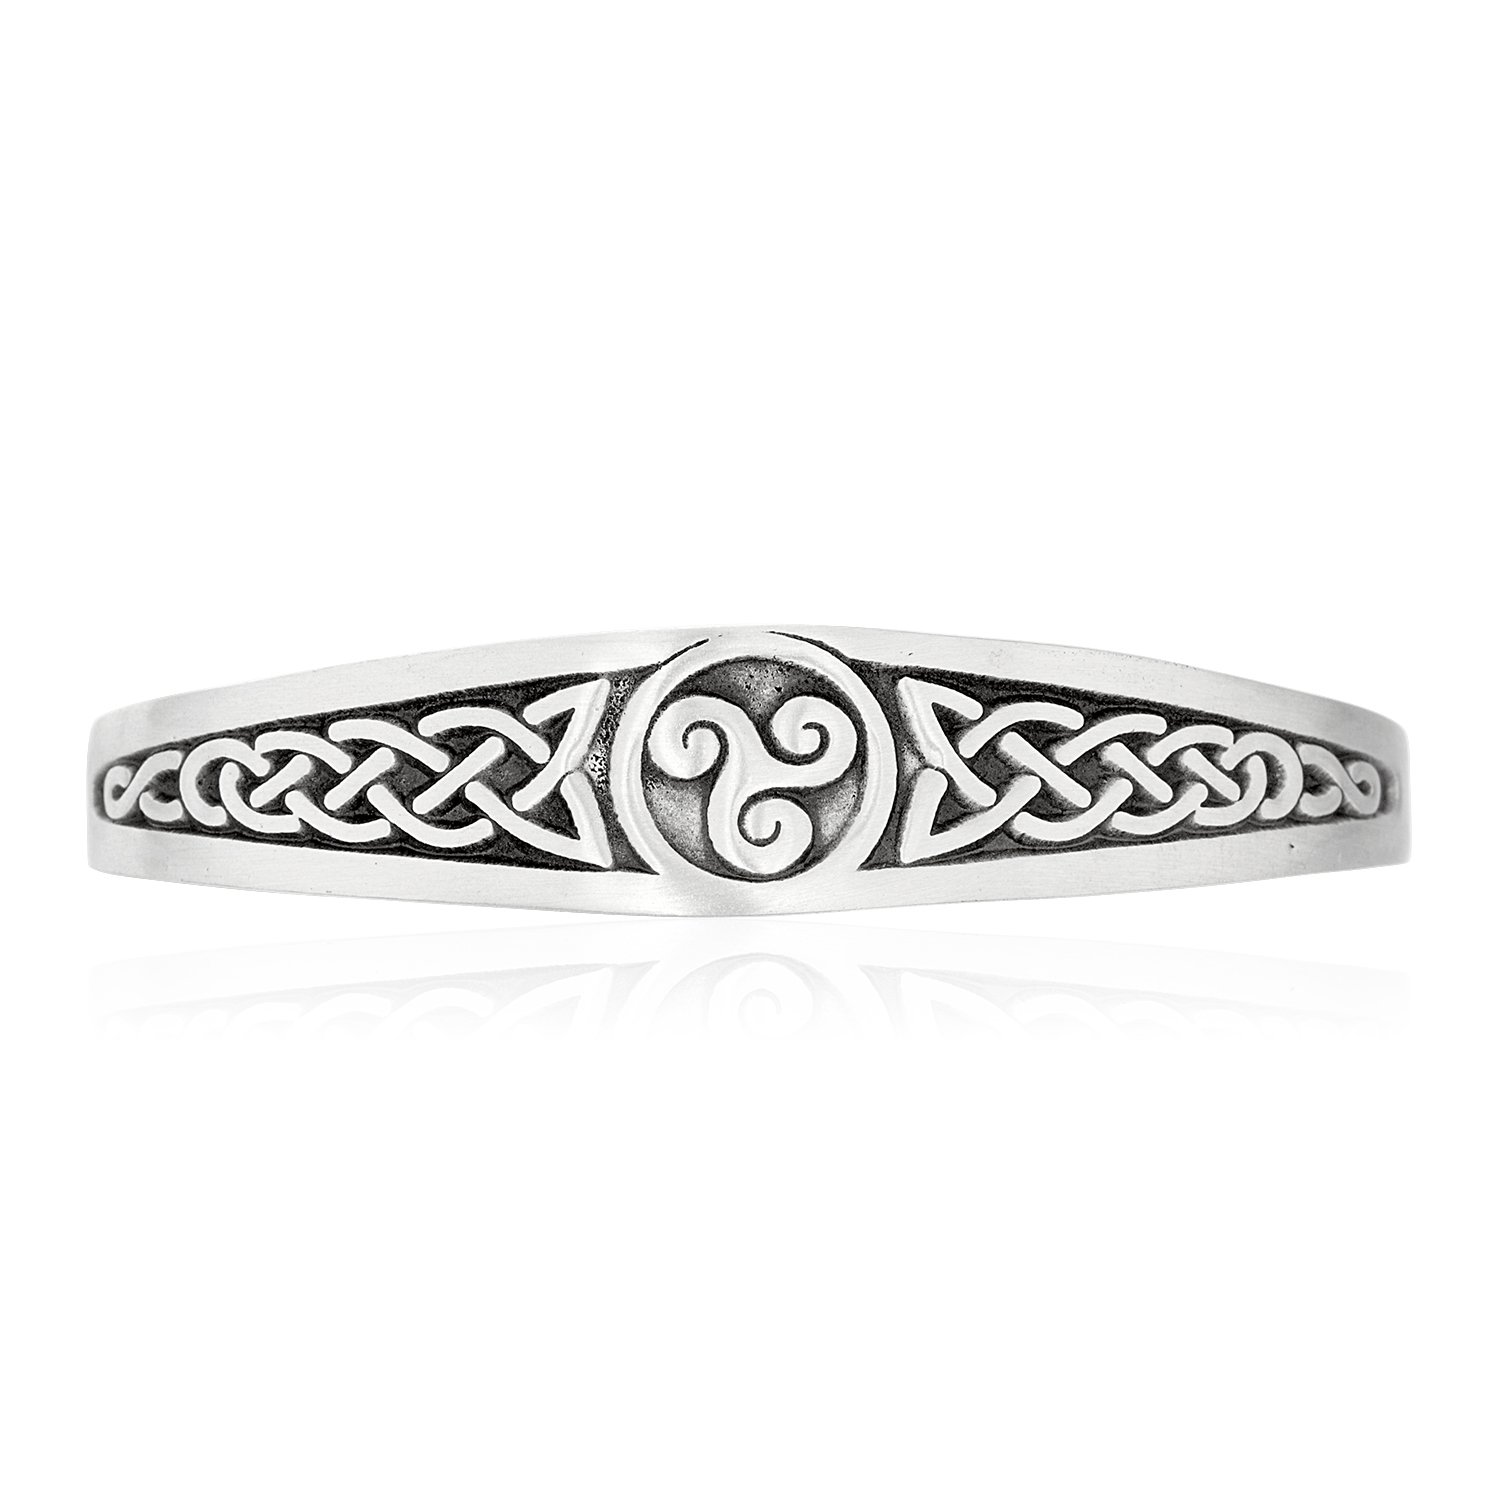 Dan's Jewelers Irish Triskele Celtic Knot Bracelet, Fine Pewter Jewelry